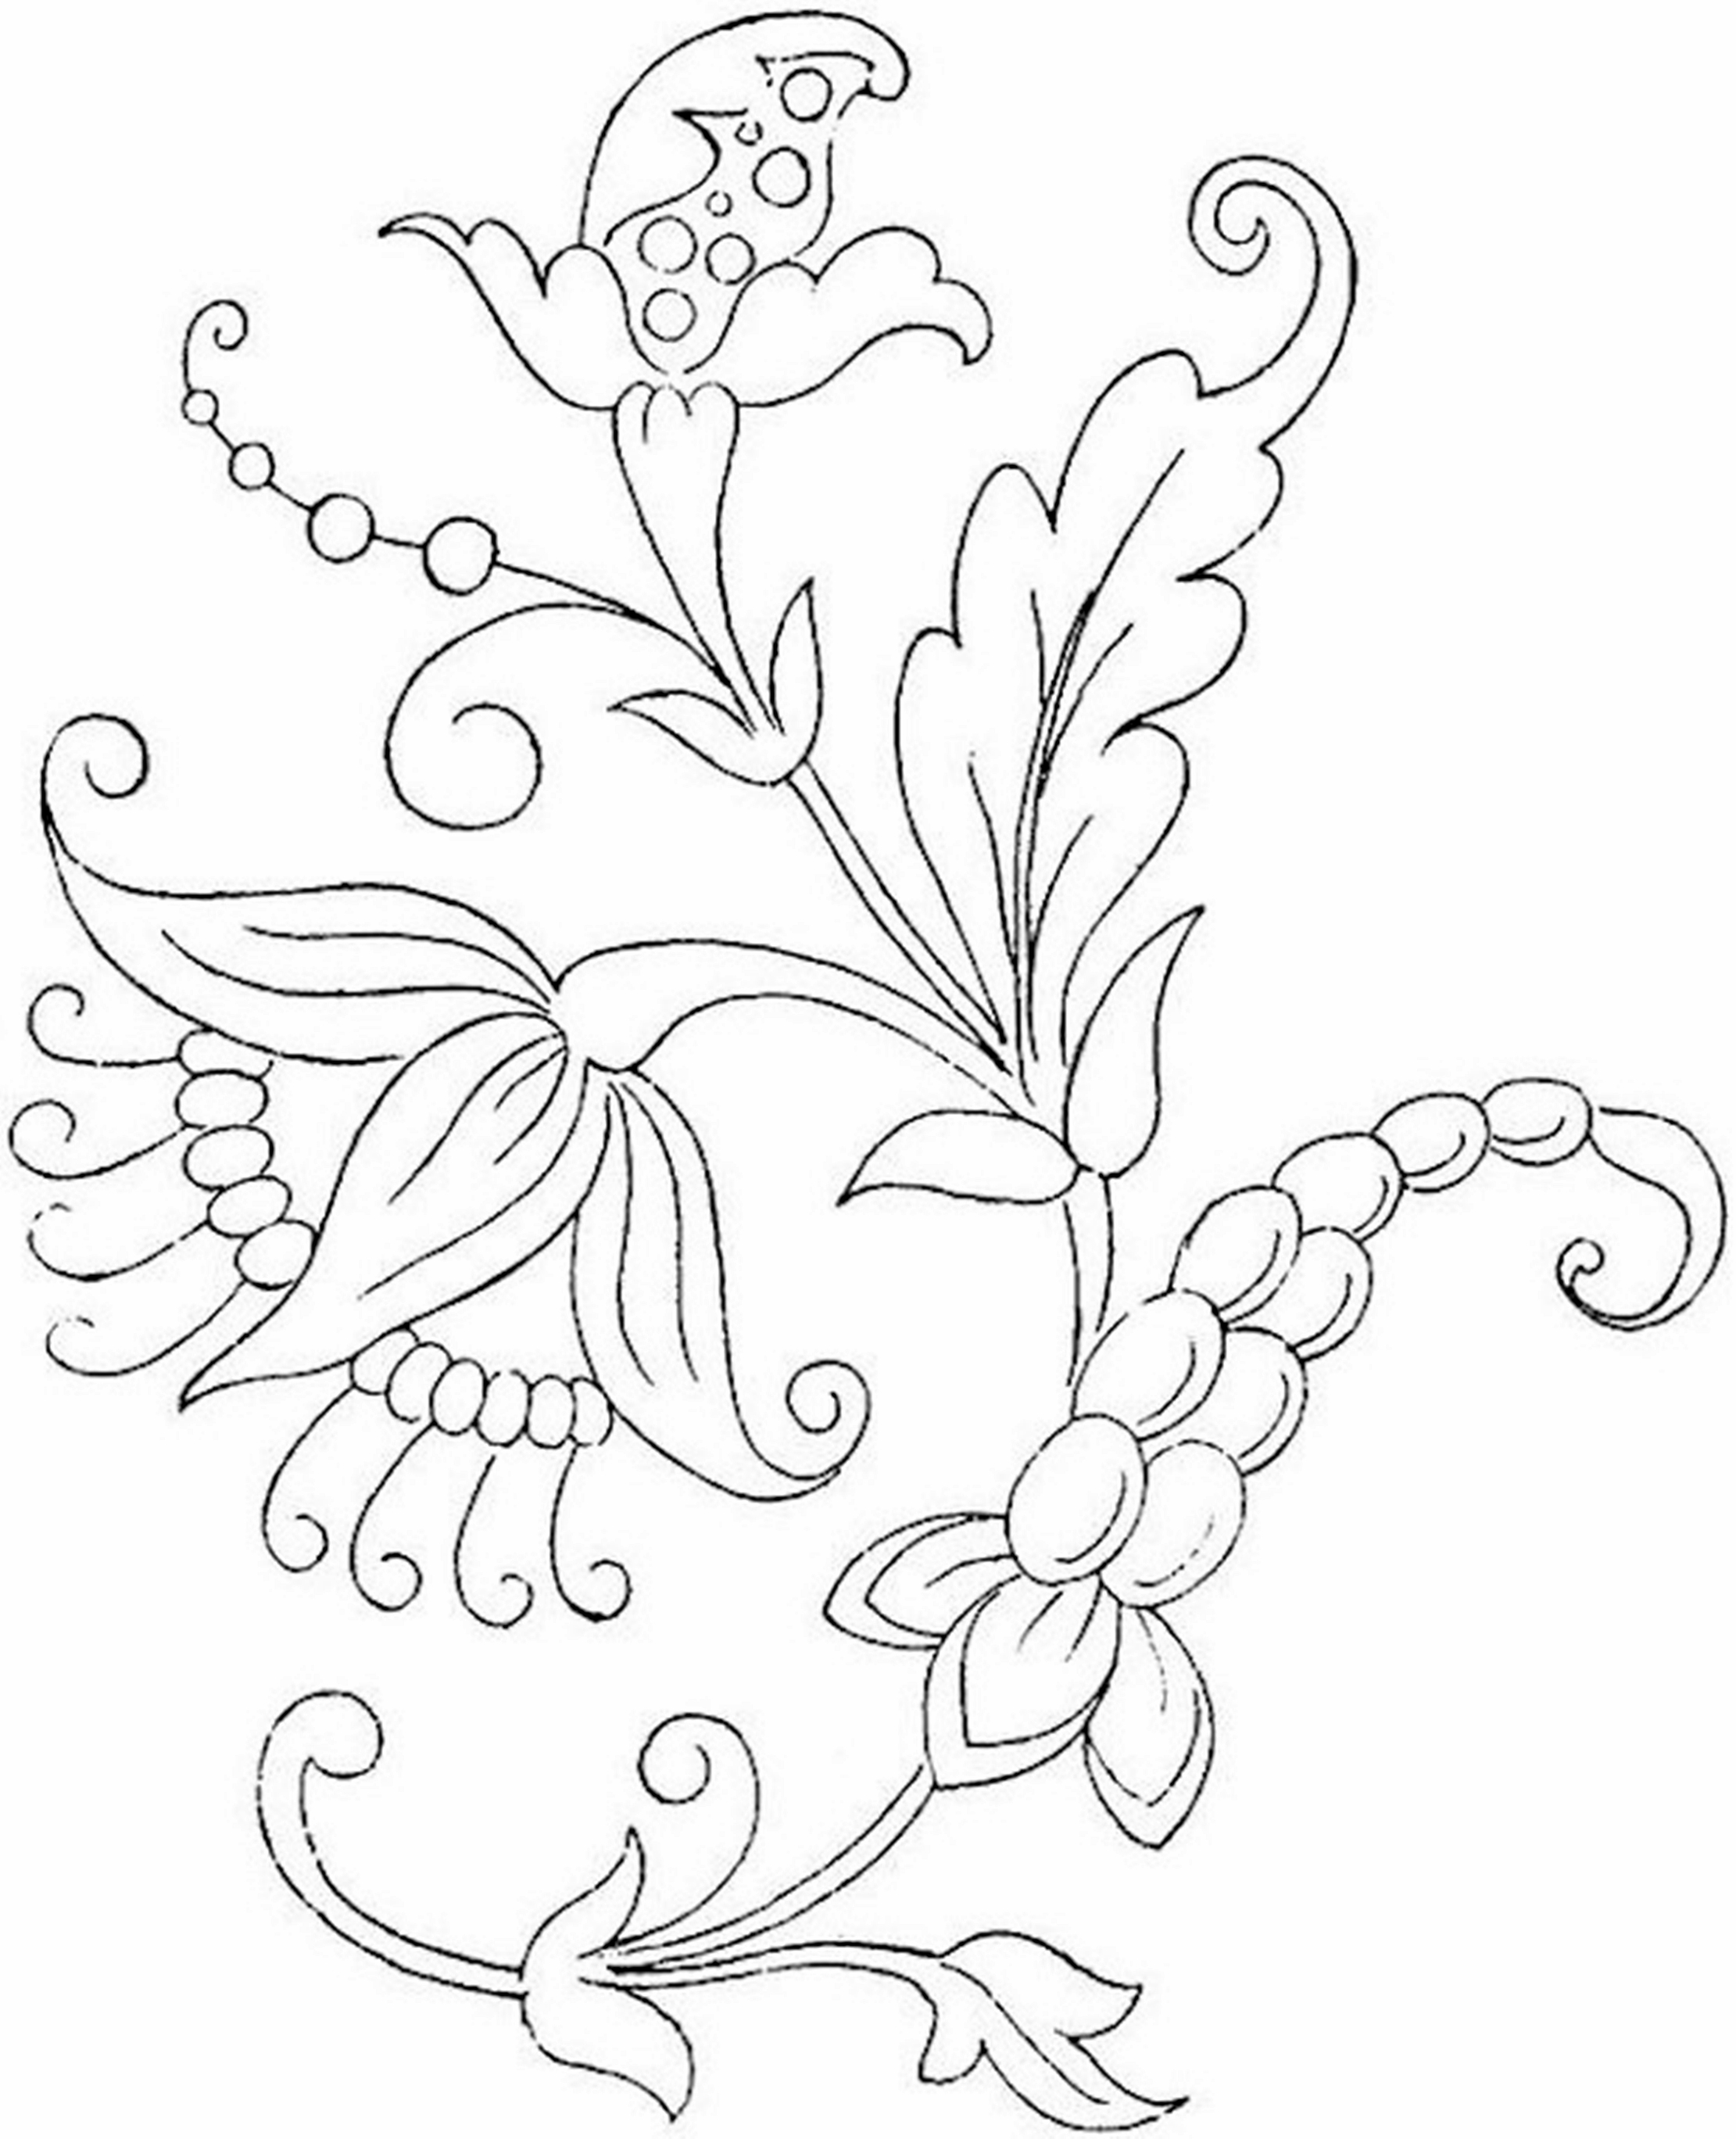 pictures of flowers to color free printables awesome flower coloring pages to print top free pictures to of color flowers free printables